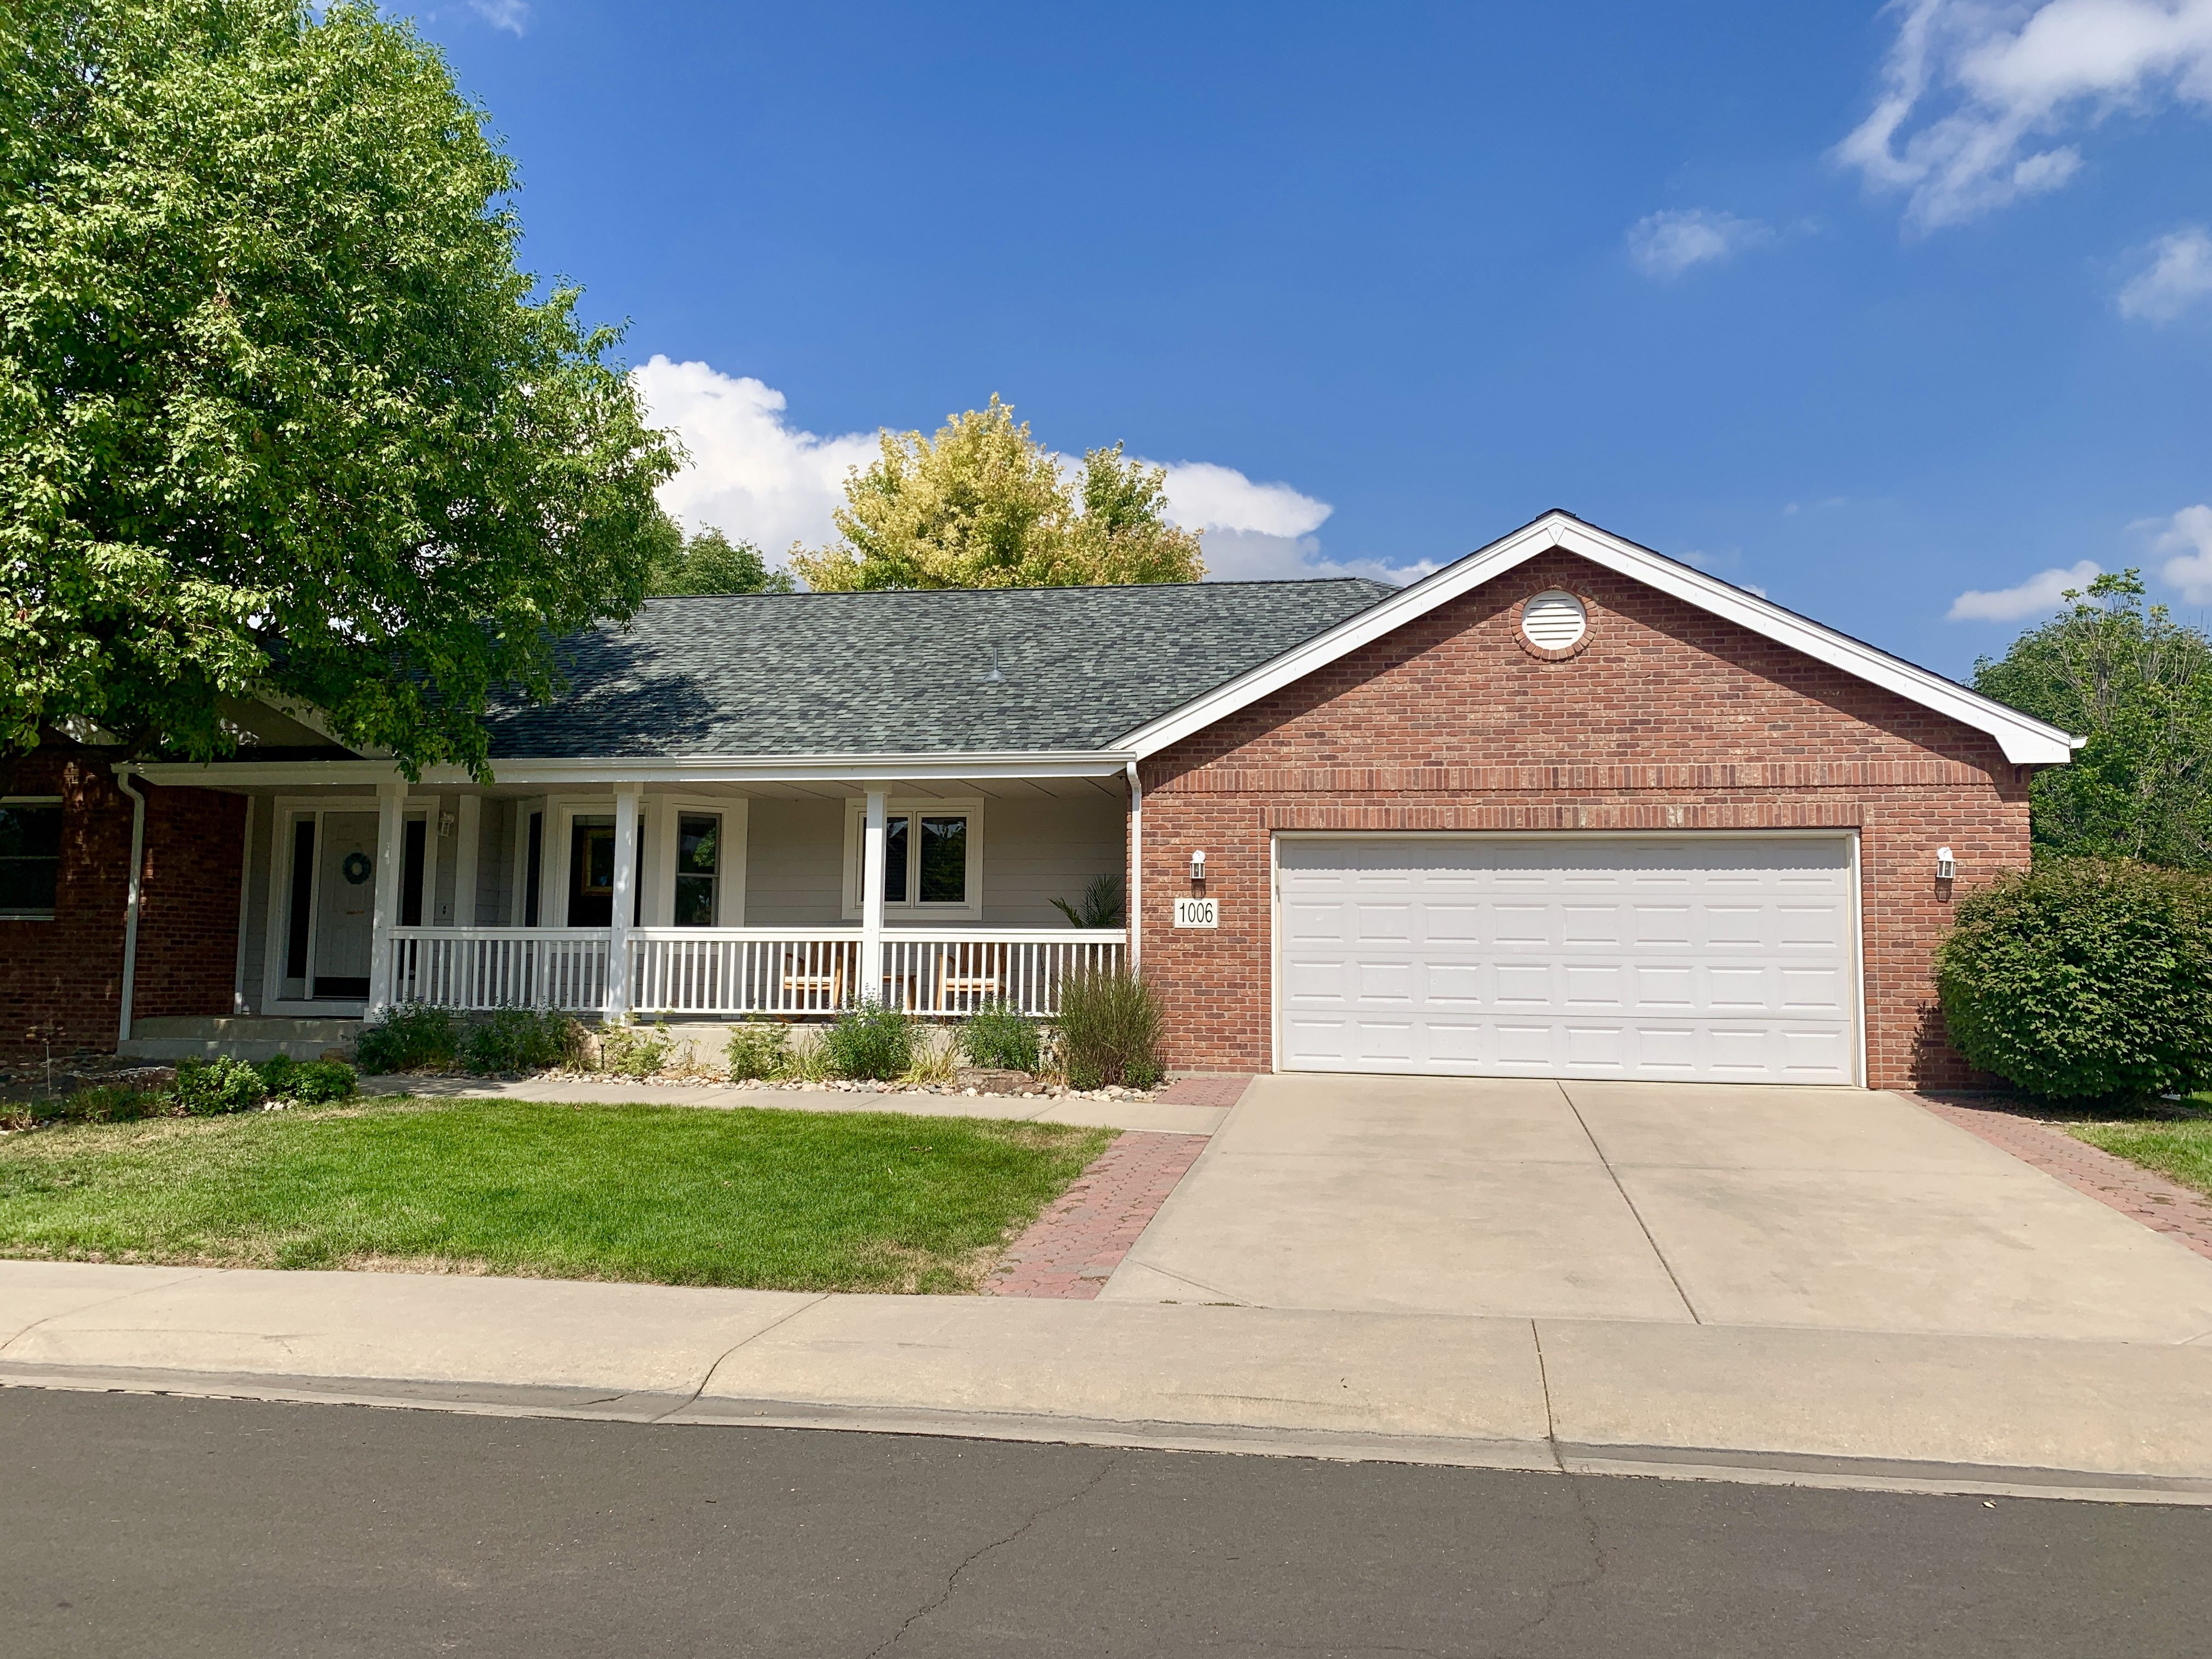 Best We Installed A New Roof On This Home In Fort Collins That 400 x 300